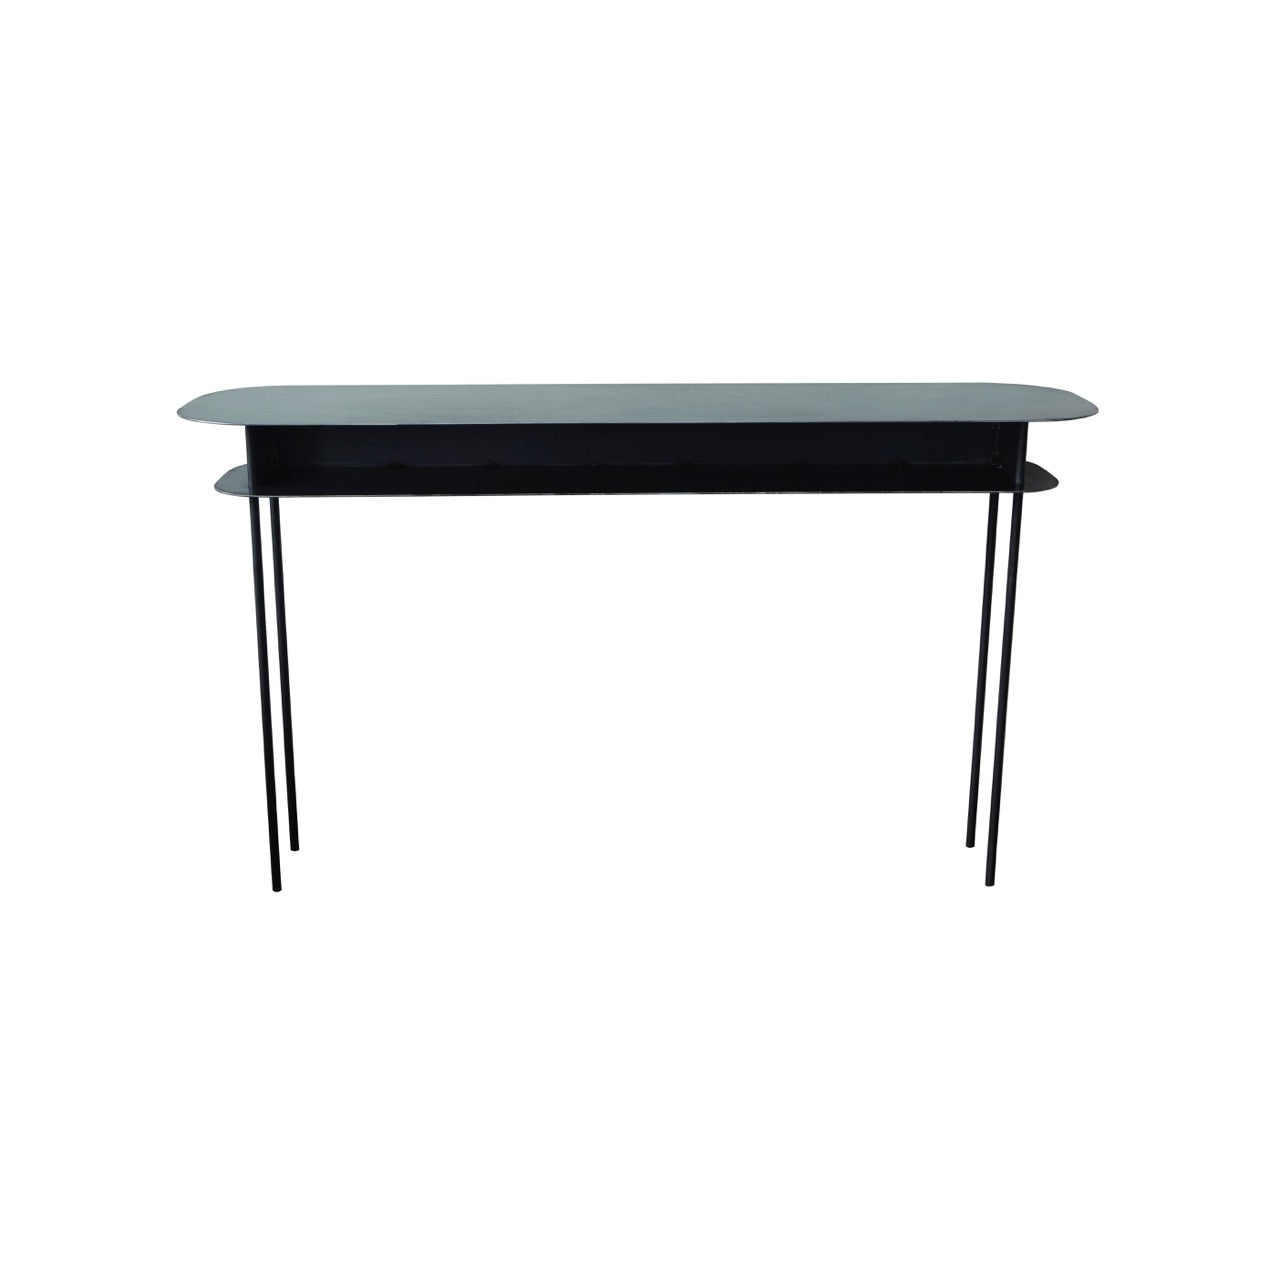 Maison Sarah Lavoine elegant slim Tokyo console table is ideal for entrance, lounge or dining room. Made in waxed steel and handcrafted by French artisan.